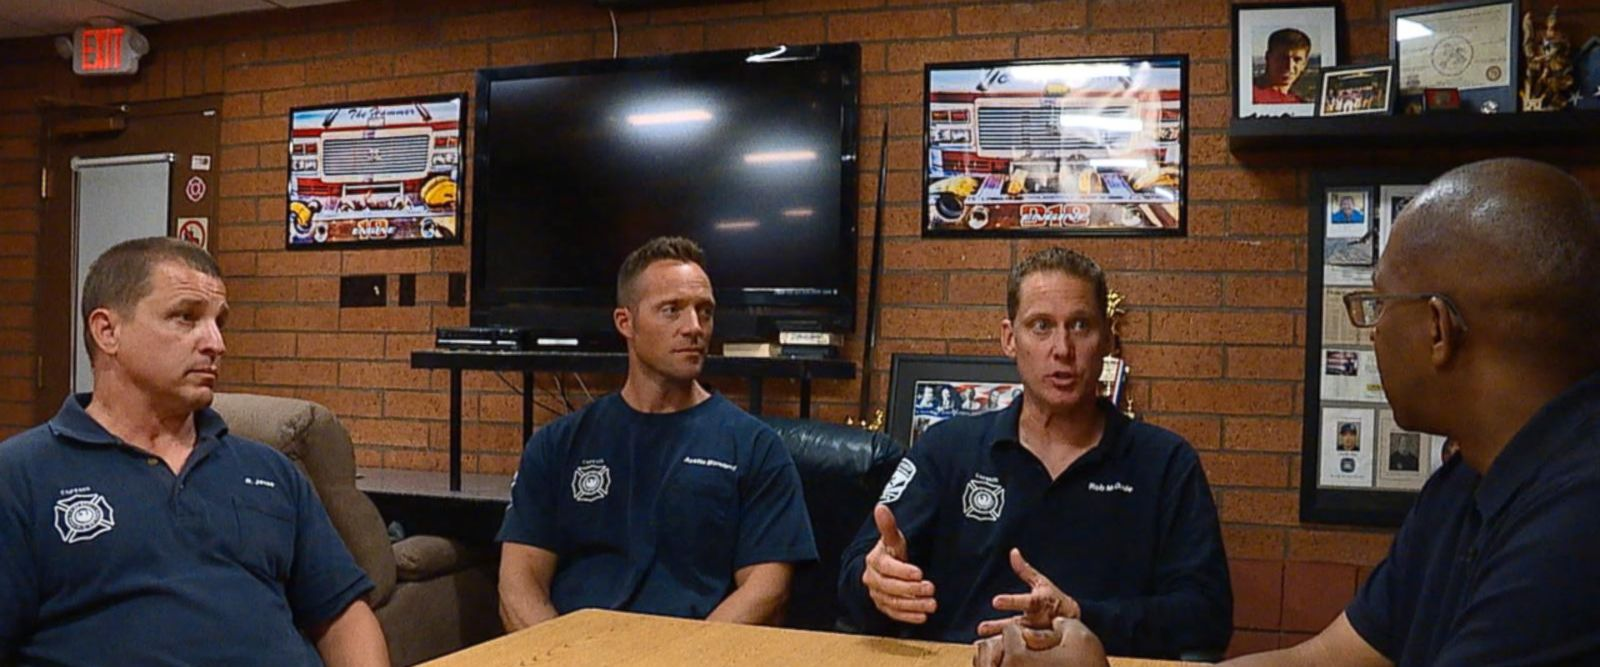 VIDEO: Phoenix firefighters share stories of trying to save opioid overdose victims